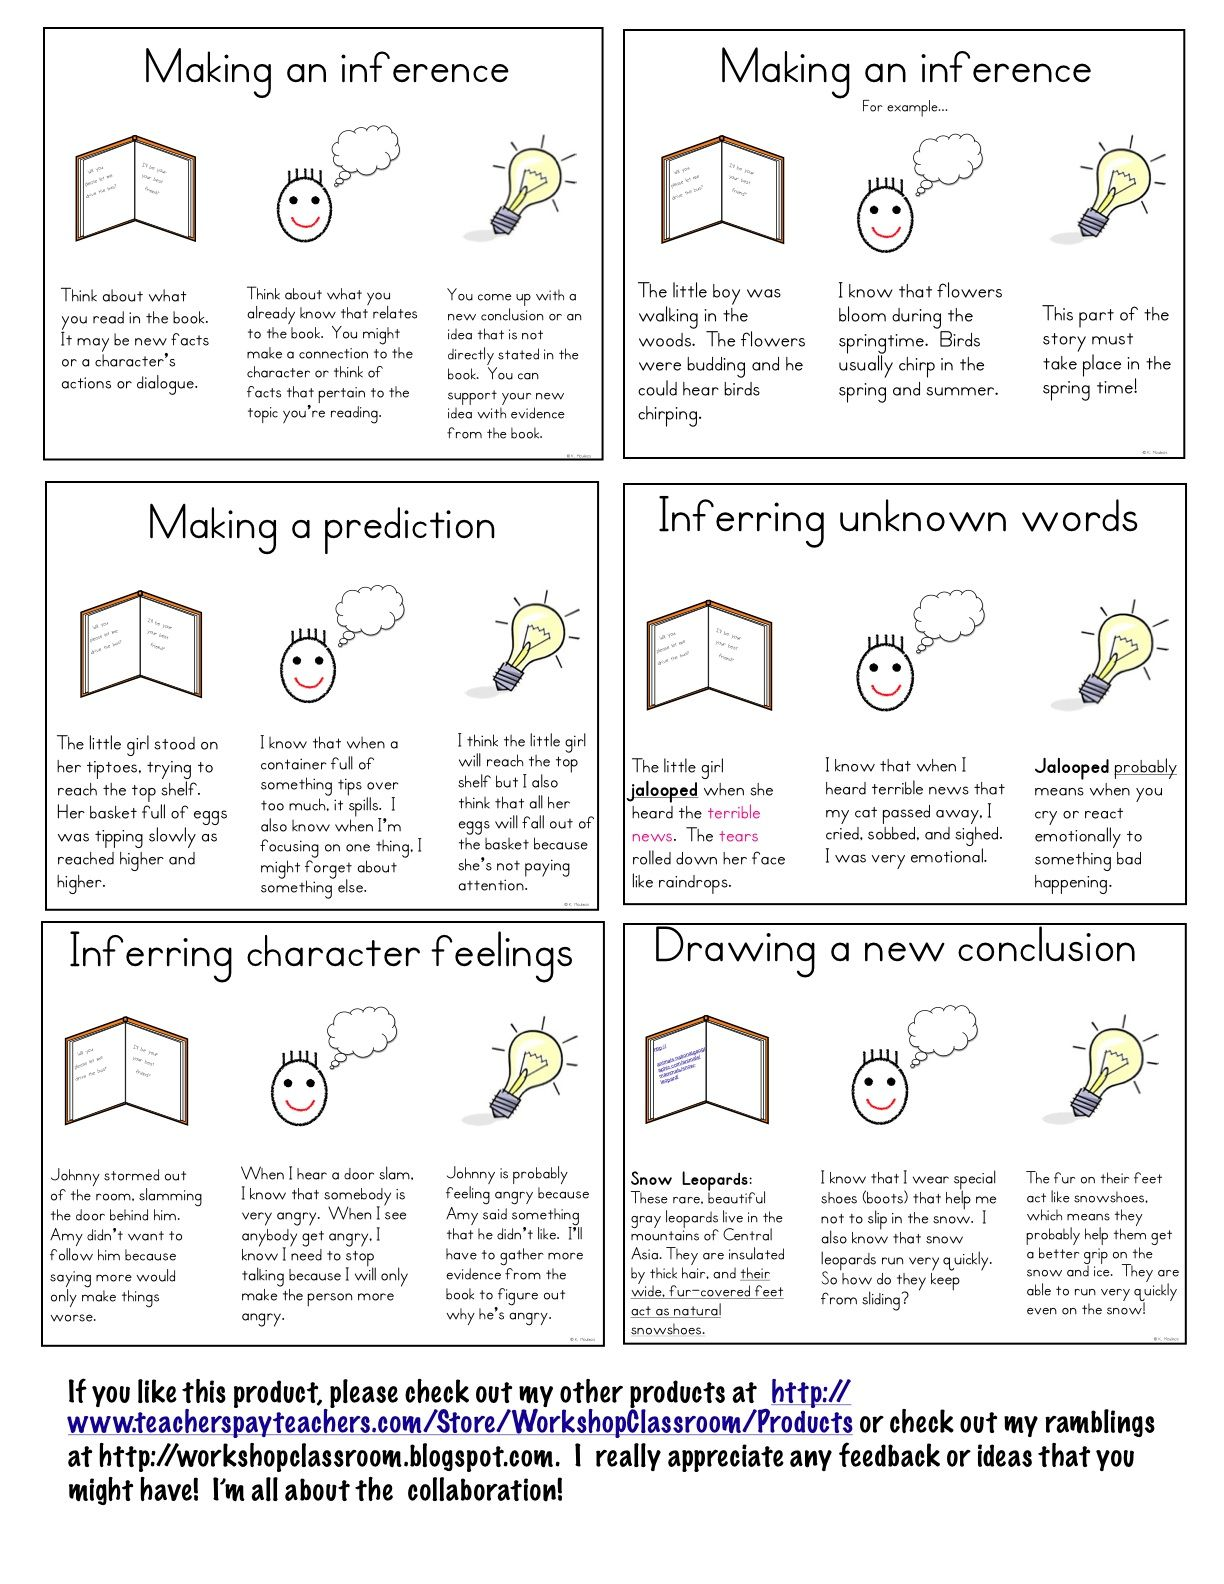 worksheet Observation Inference Worksheet 17 images about inferencing on pinterest graphic organizers beautiful artwork and charts